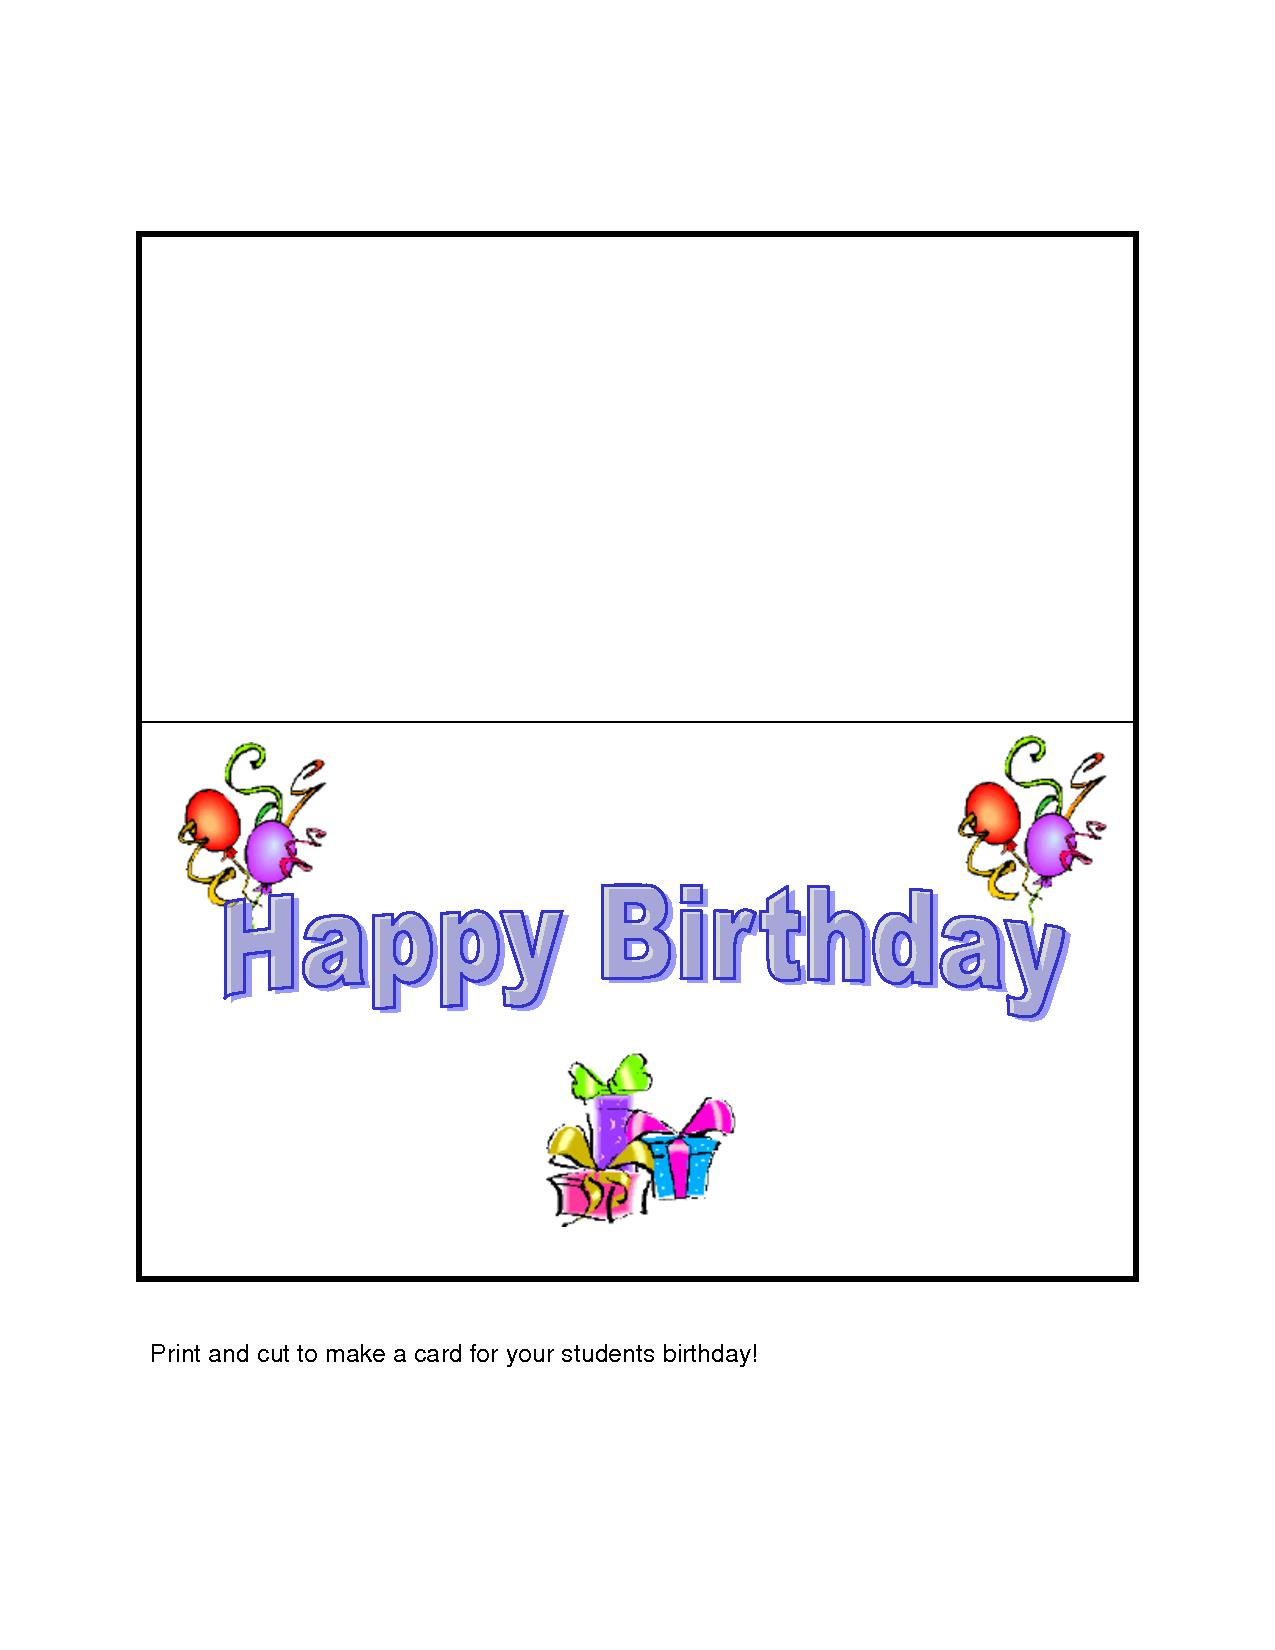 birthday card design template ; student-birthday-card-by-steph777-kndorh3f-simple-card-decorations-balloons-and-gifts-sign-greetings-print-your-own-birthday-card